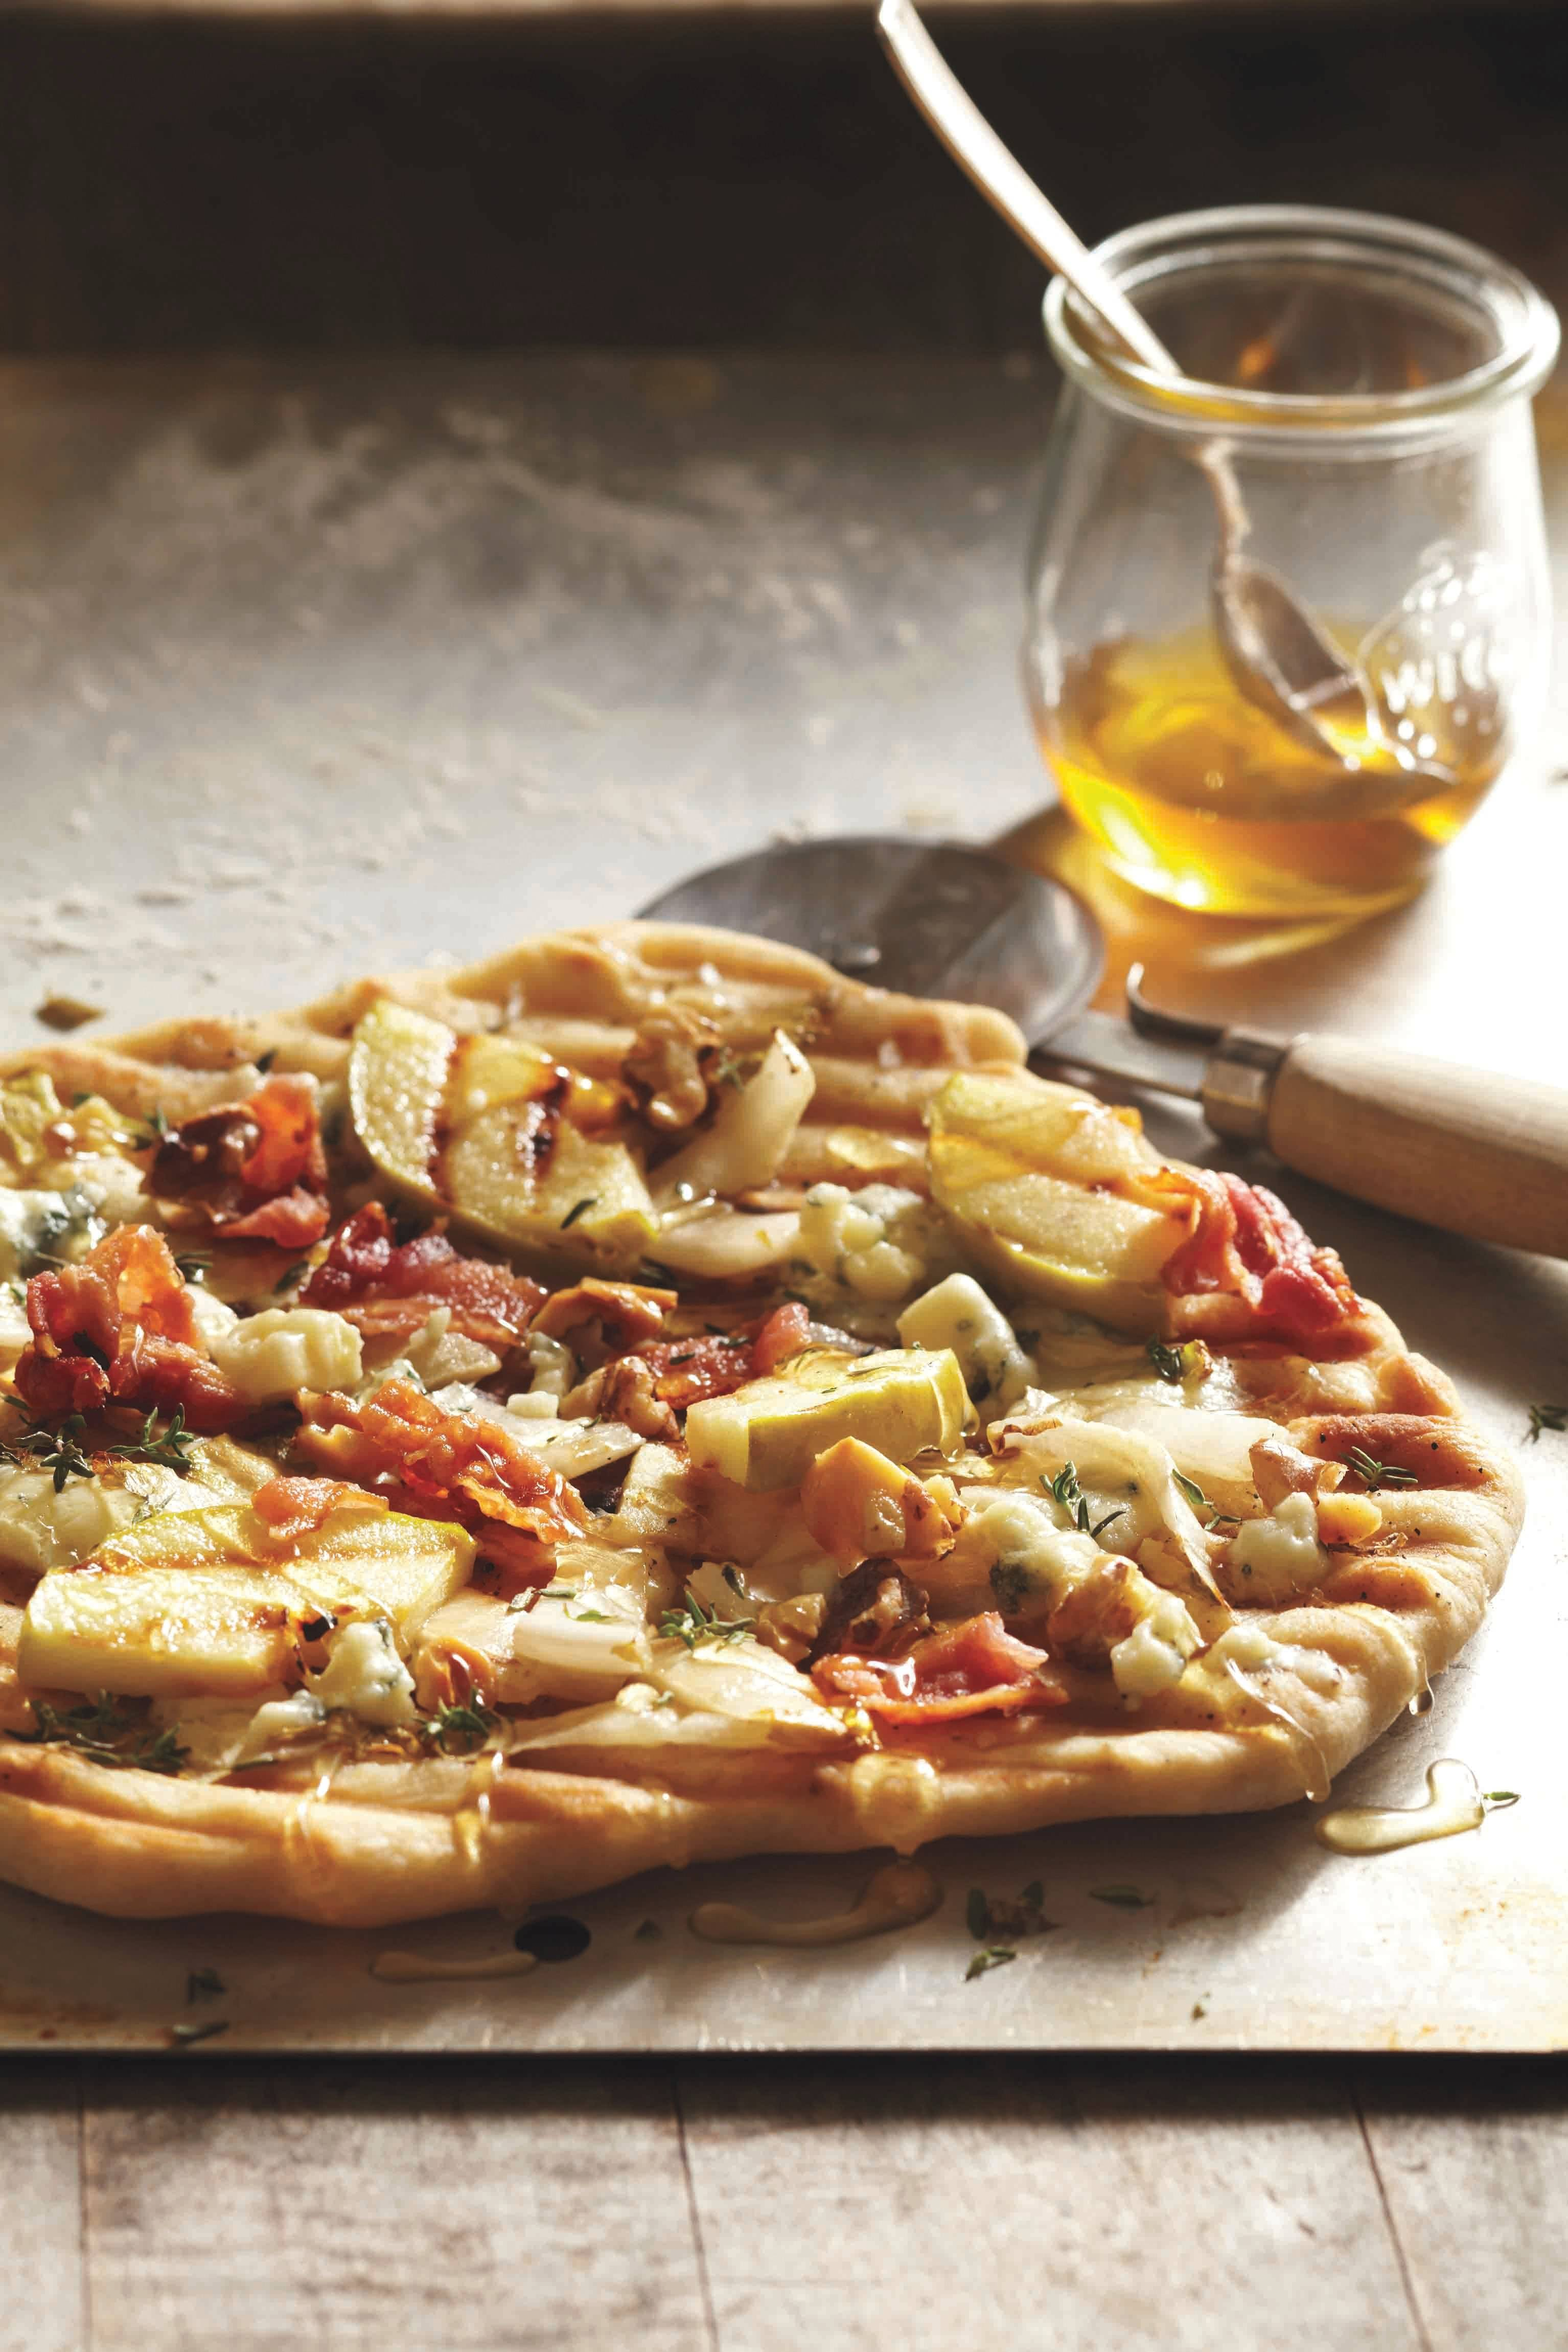 Endive and apples hit the flames before topping a blue cheese- and bacon-studded grilled pizza.